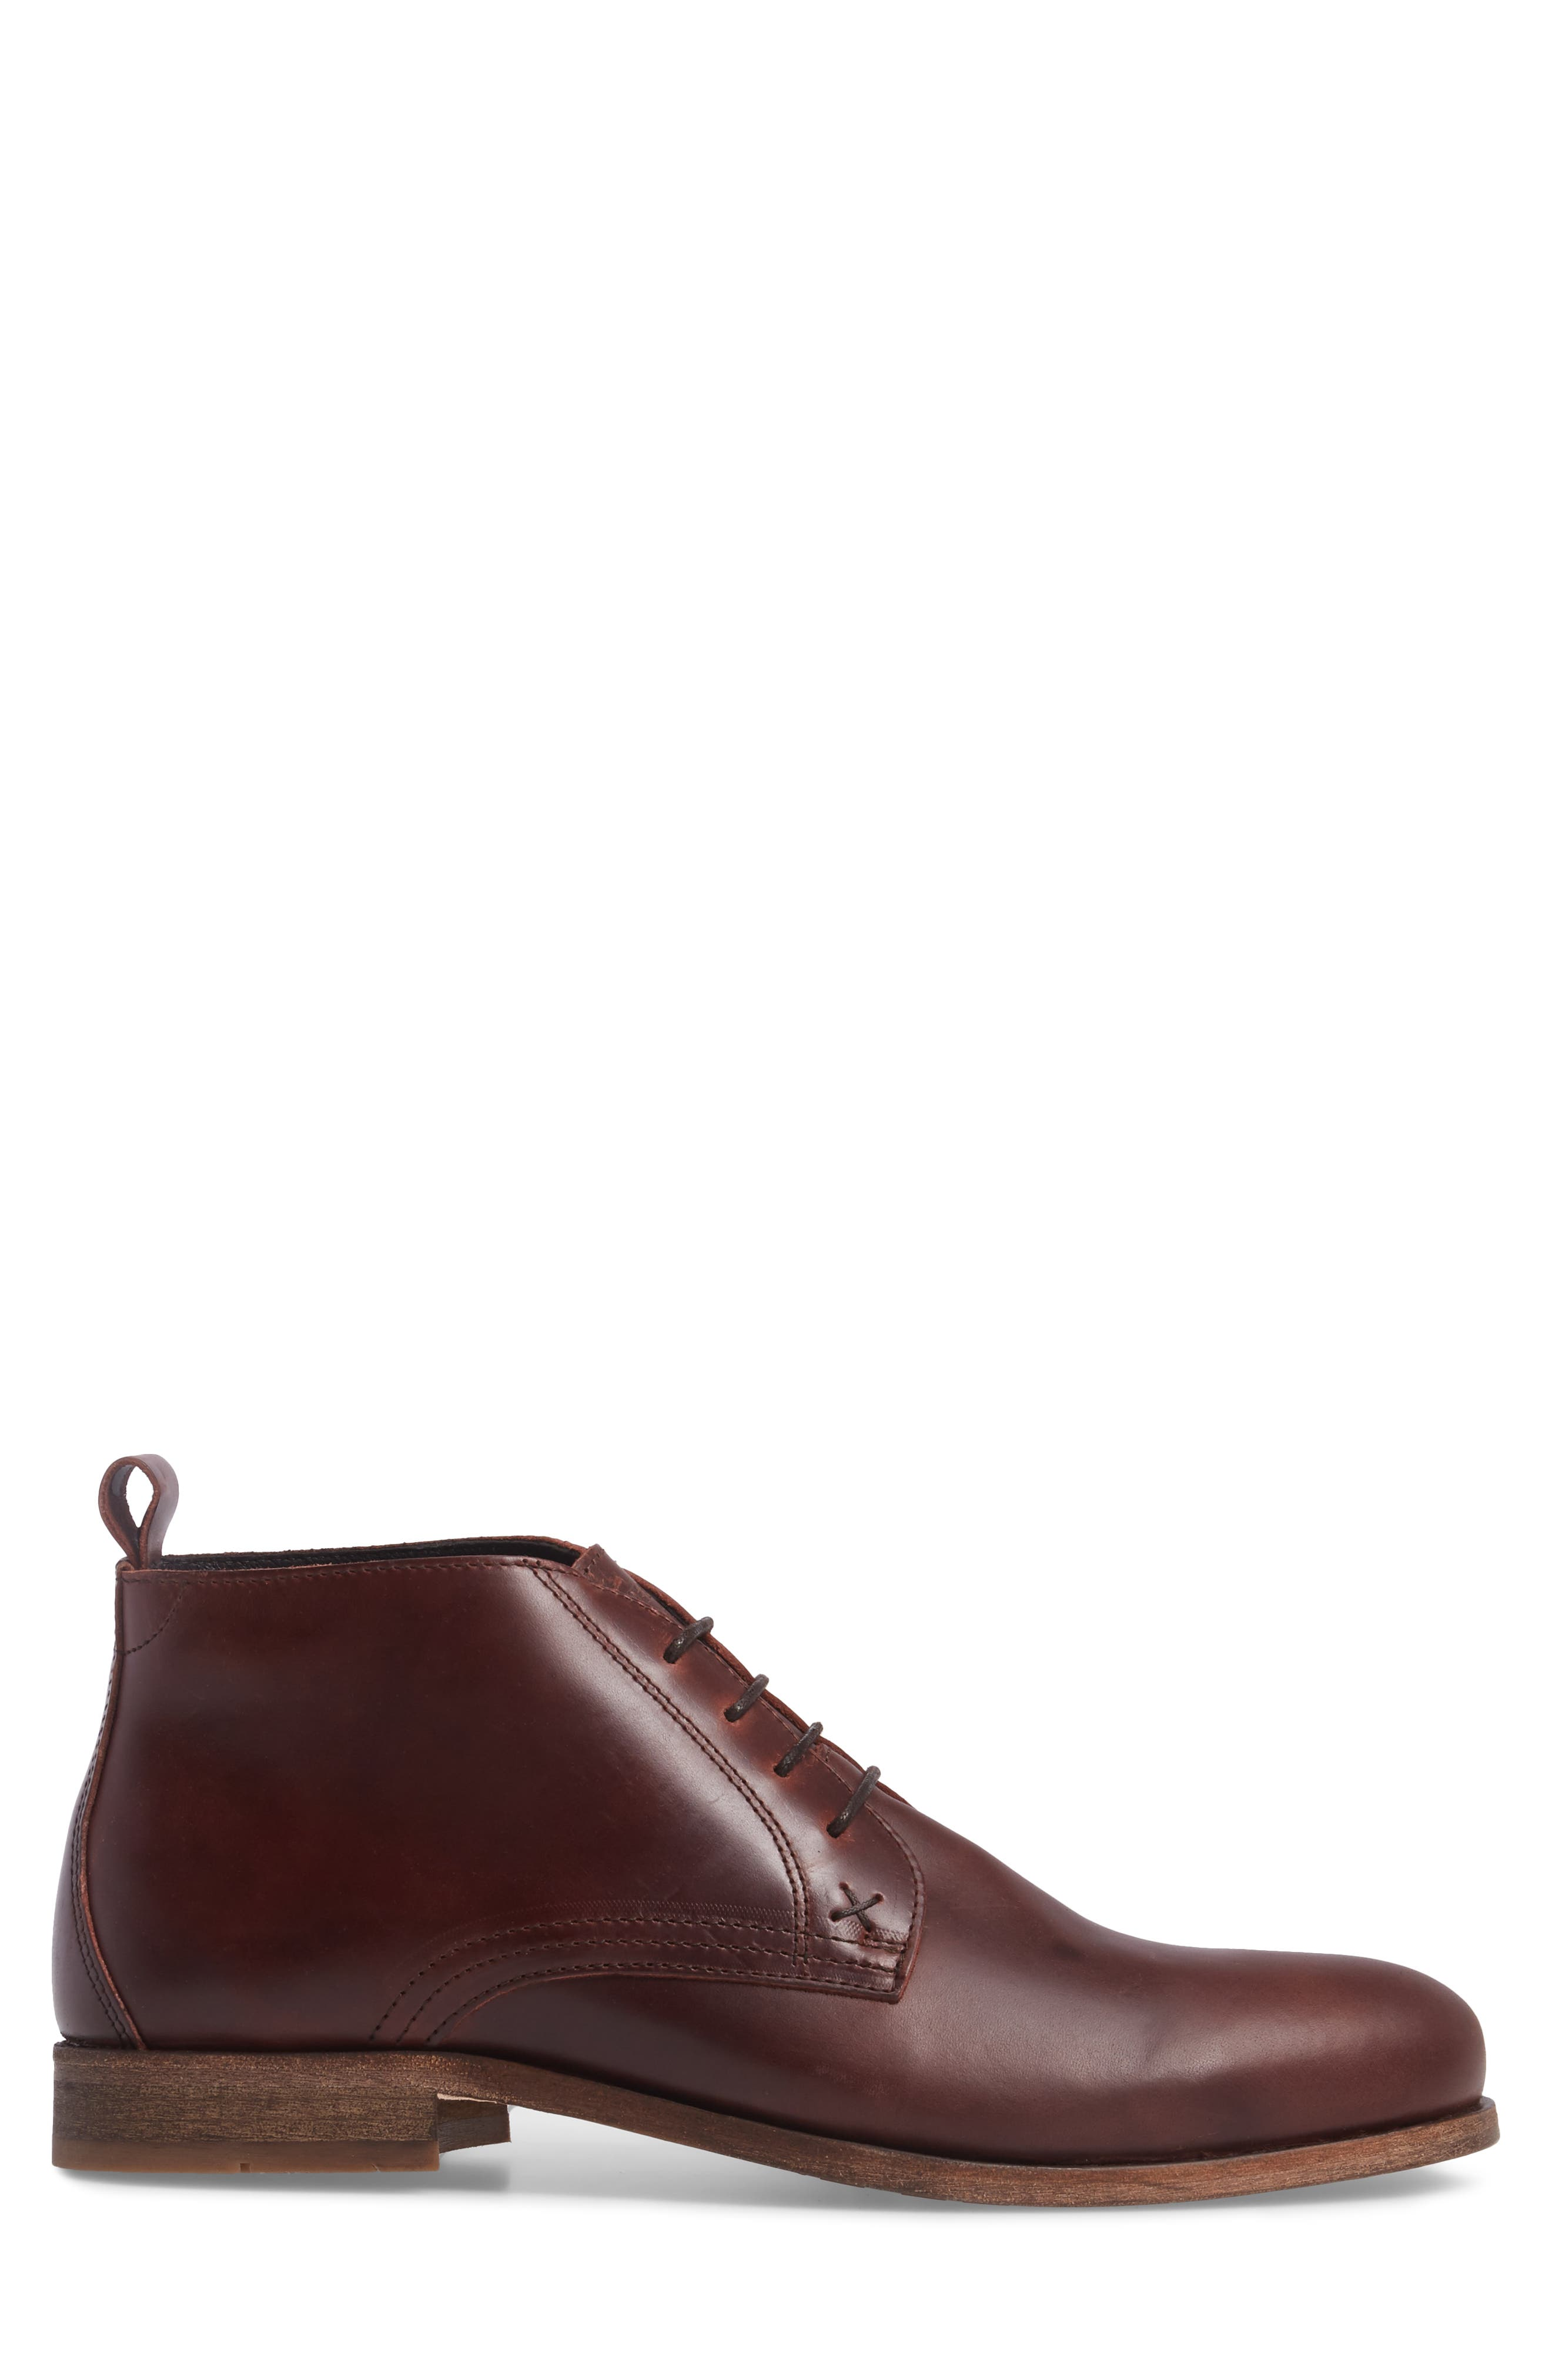 Deacon Chukka Boot,                             Alternate thumbnail 3, color,                             Brown Leather